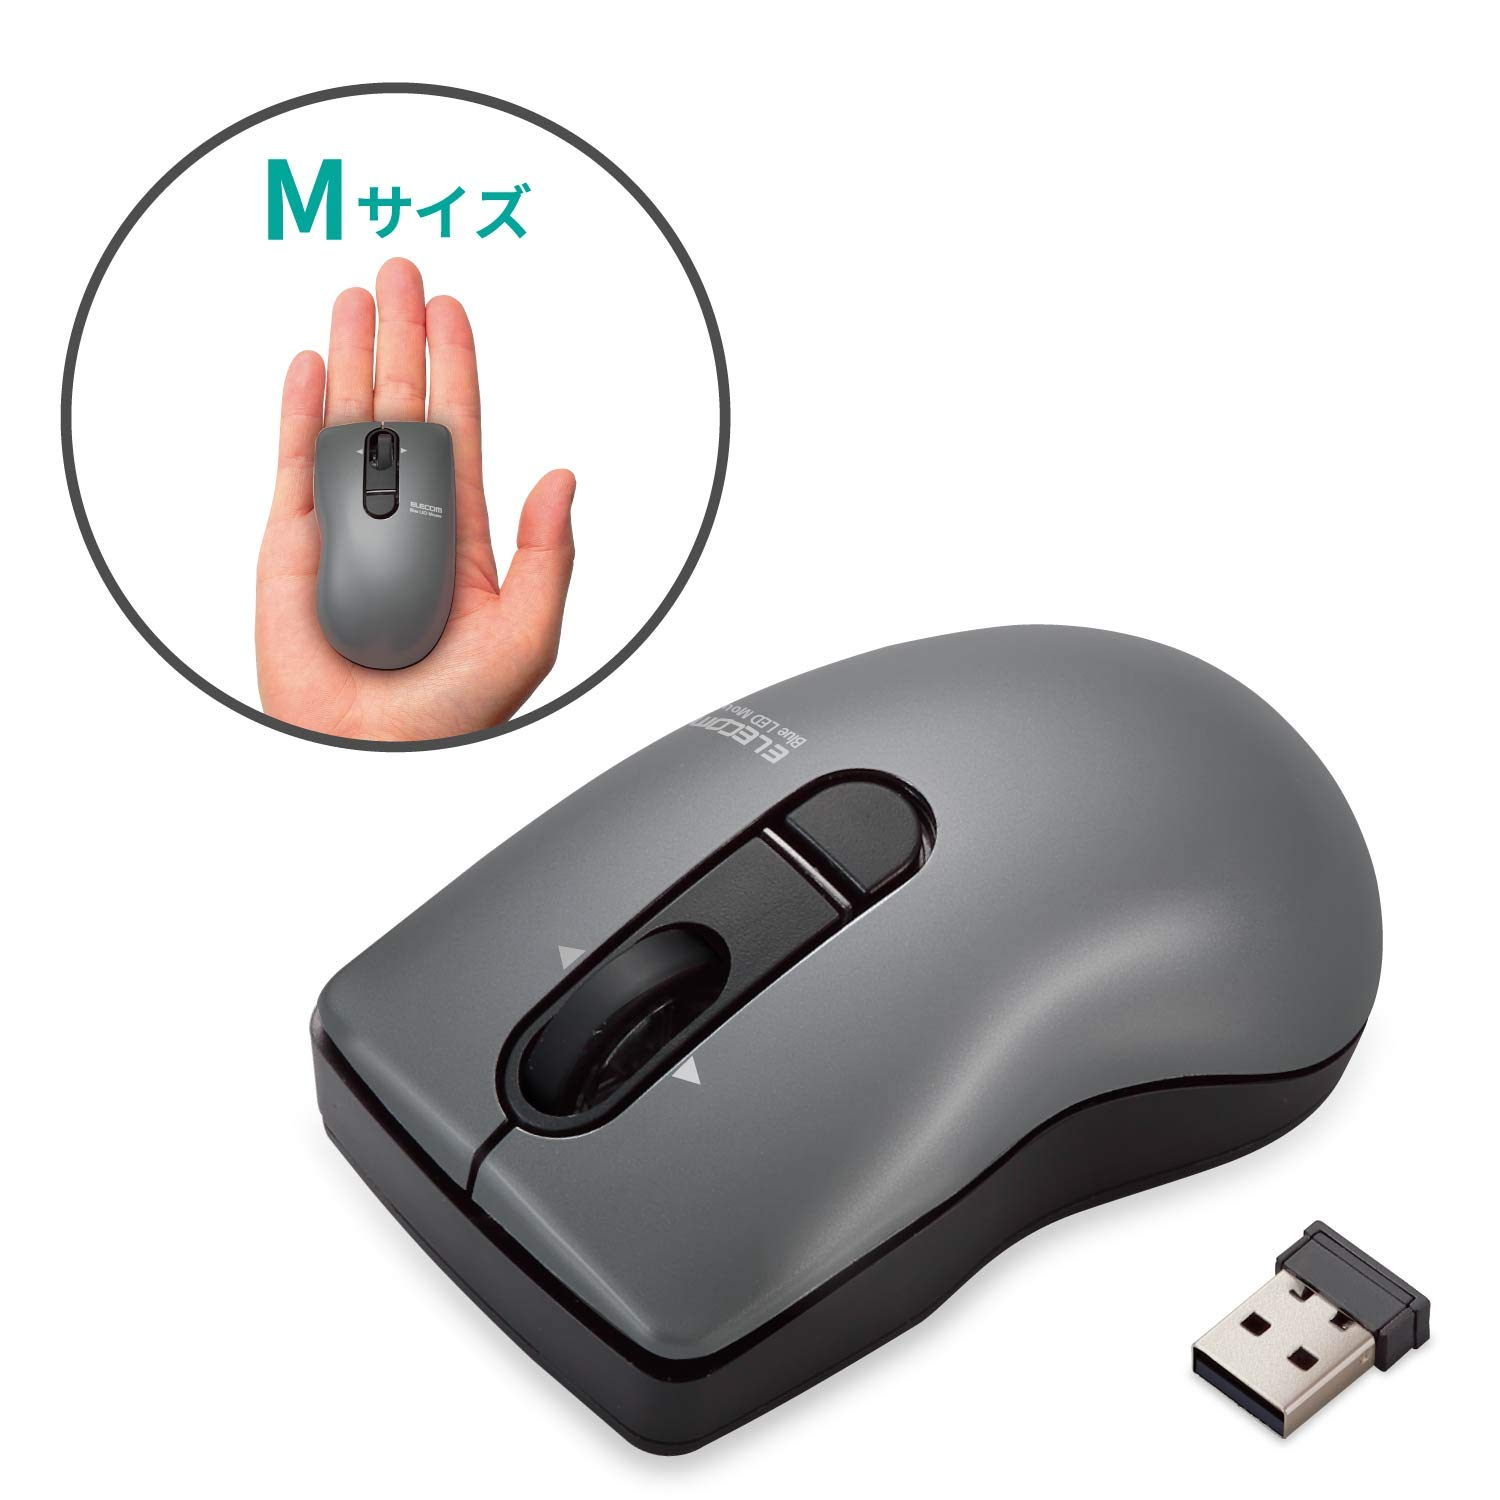 Elecom wireless mouse quiet click sound 95% reduce 3 button